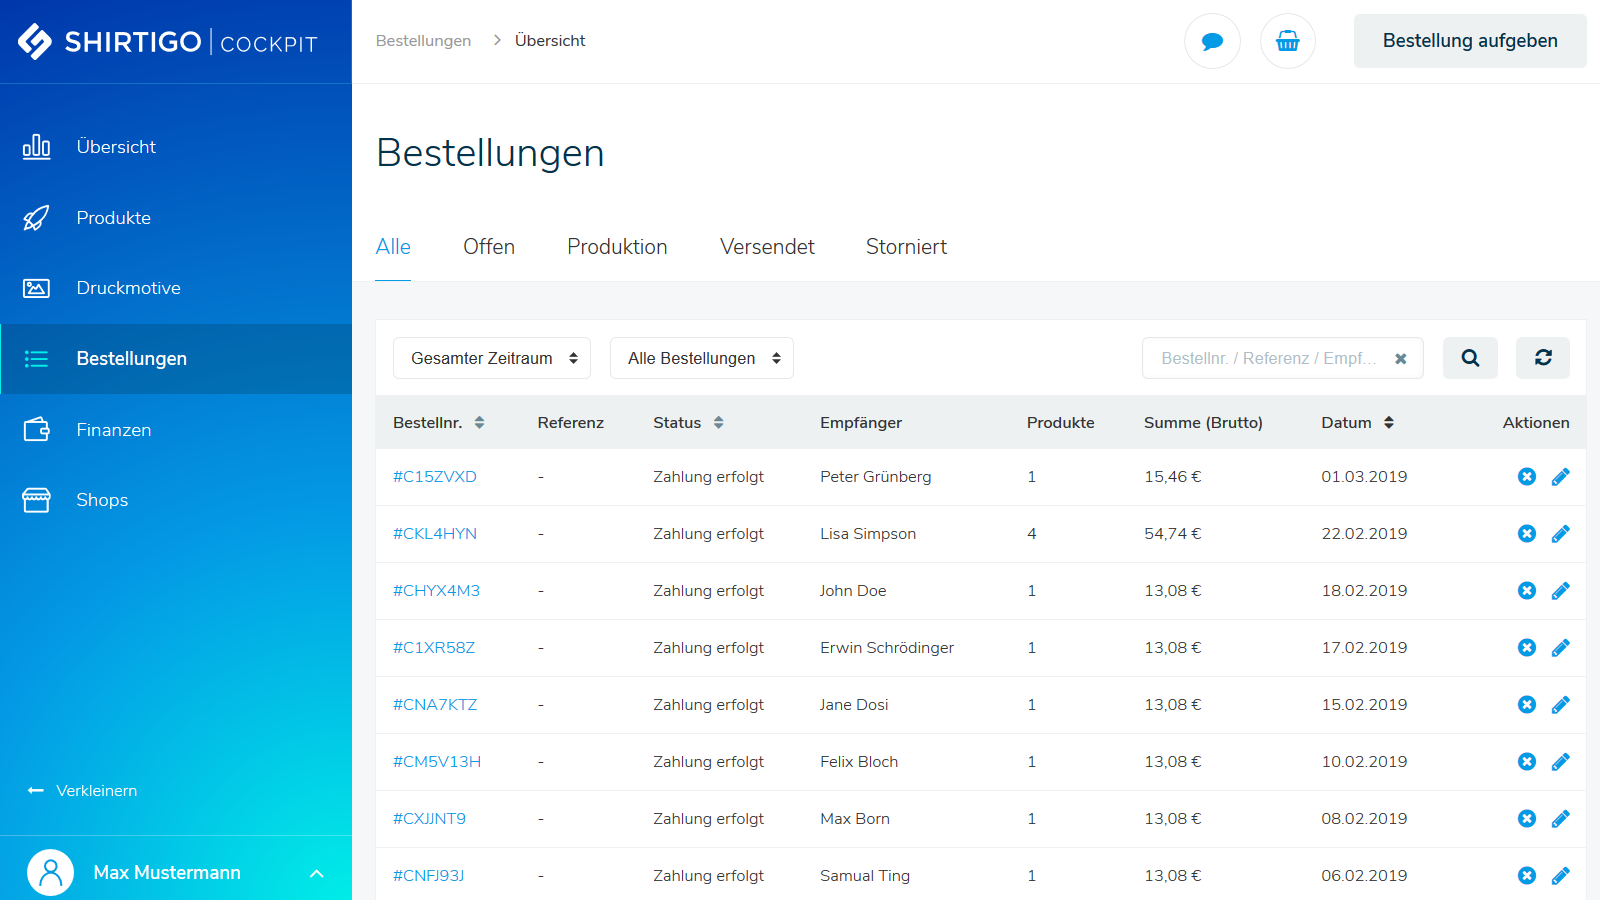 Keep track of your ordered products & their fulfillment status